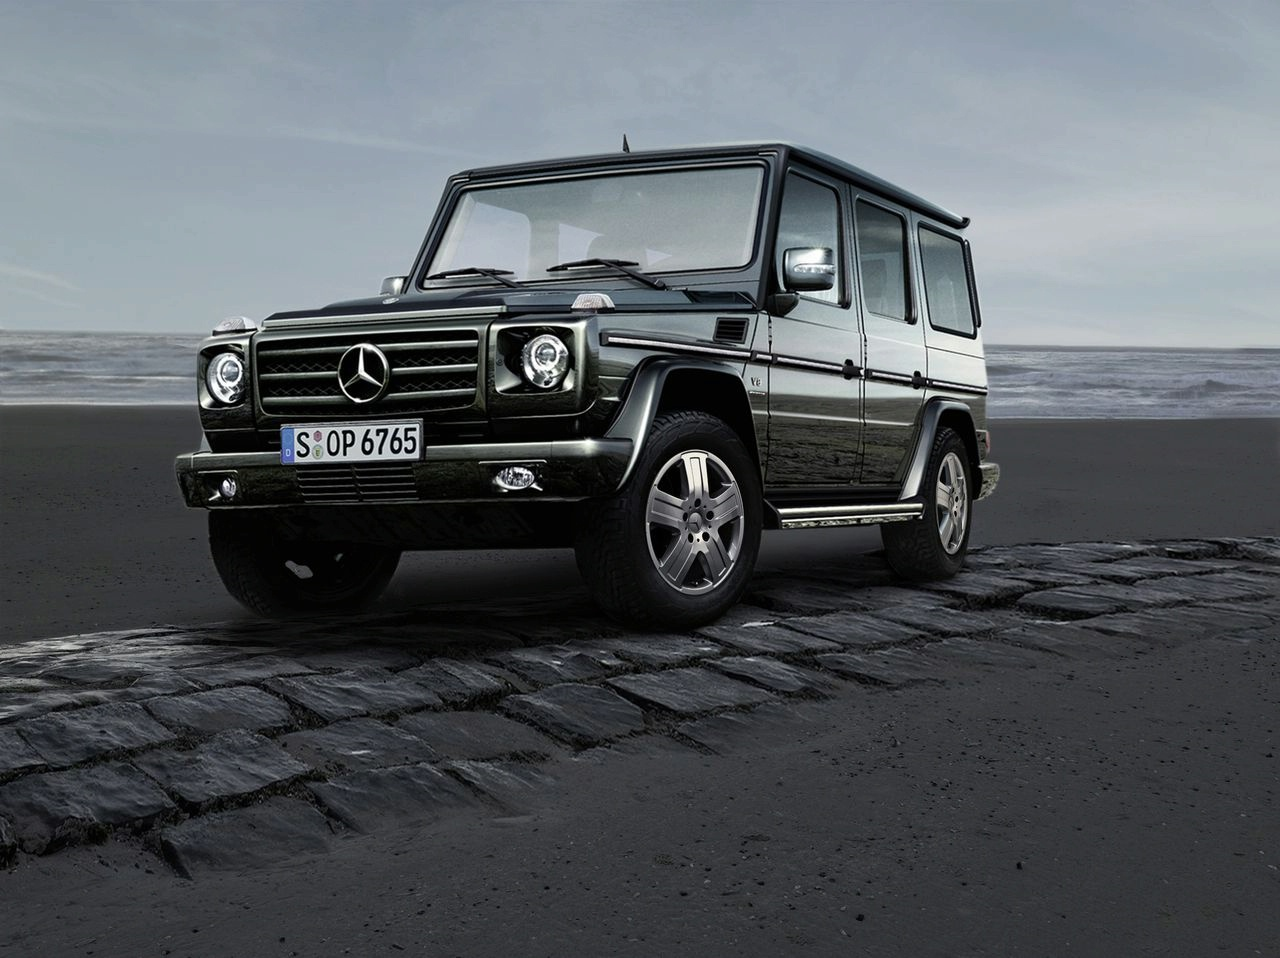 mercedes g klasse edition30 and g klasse edition30 pur anniversary models autoevolution. Black Bedroom Furniture Sets. Home Design Ideas